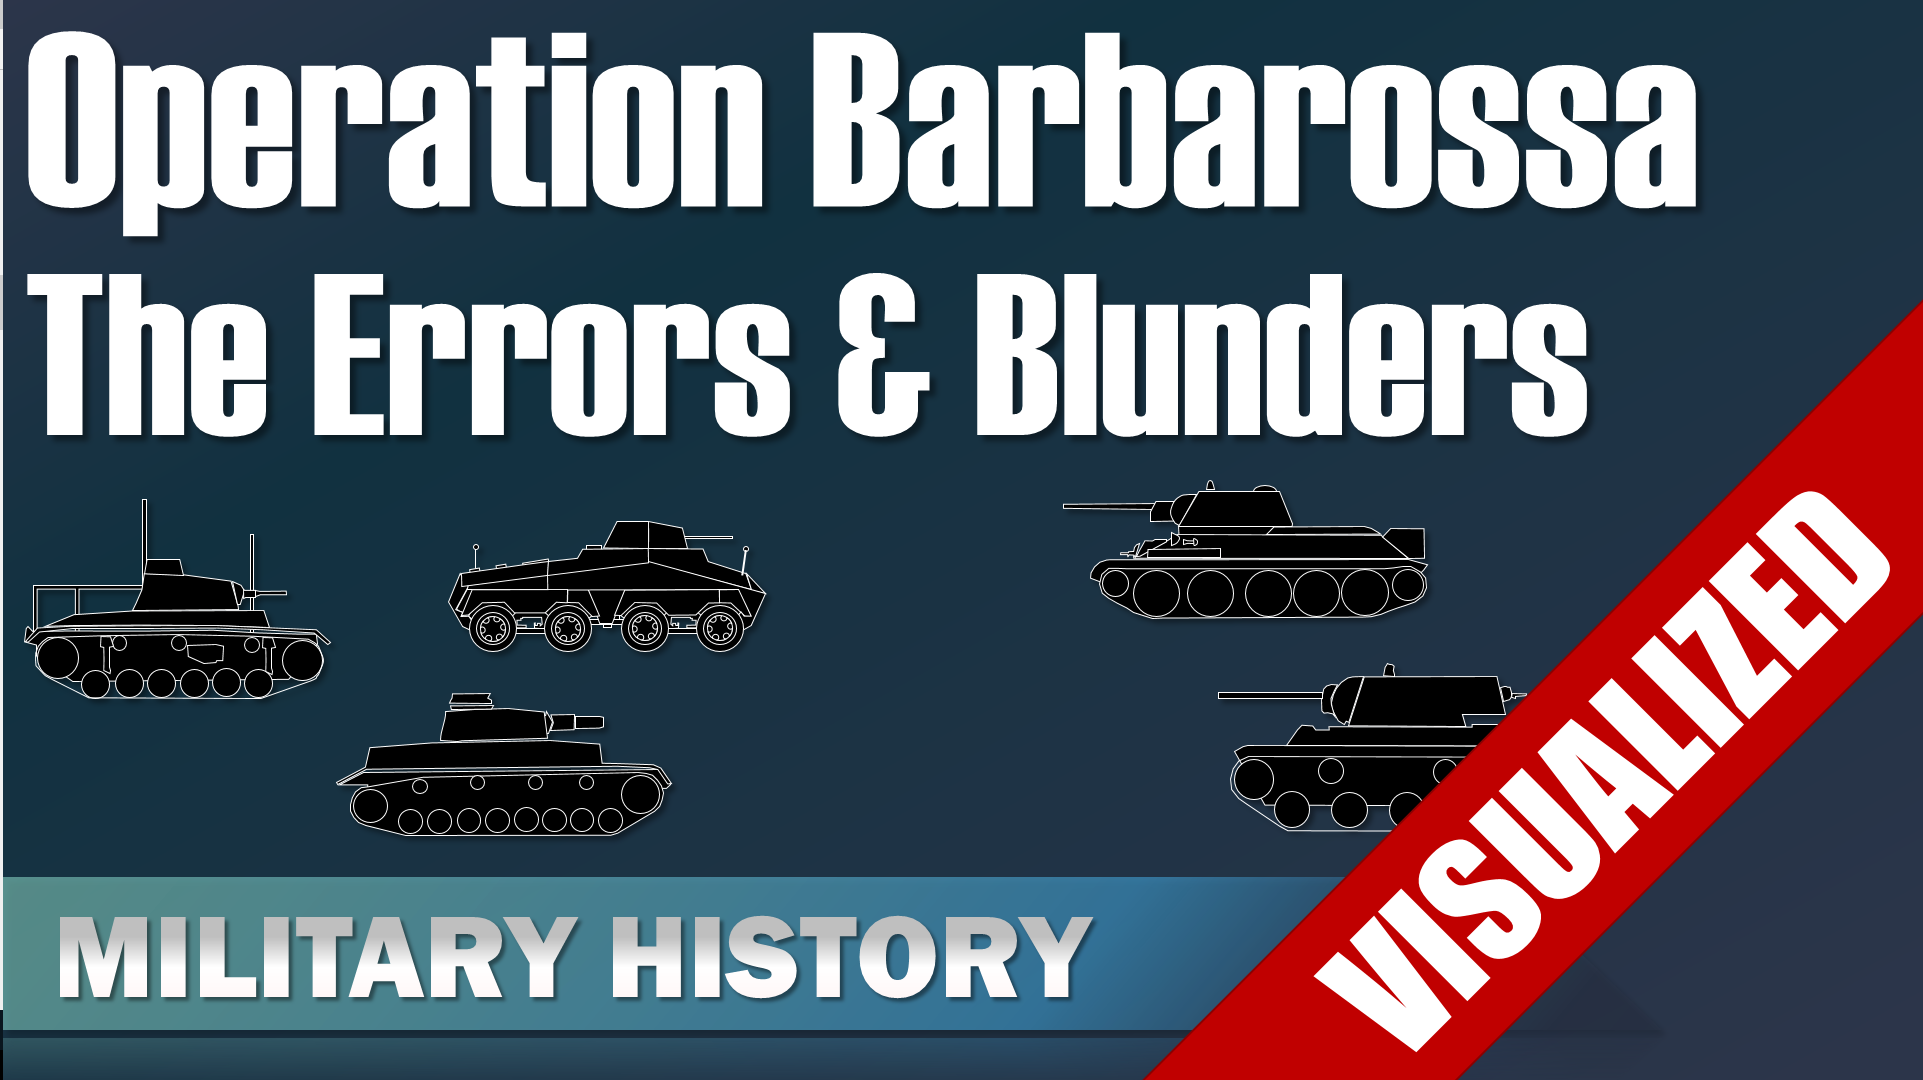 Operation Barbarossa Erros And Blunders